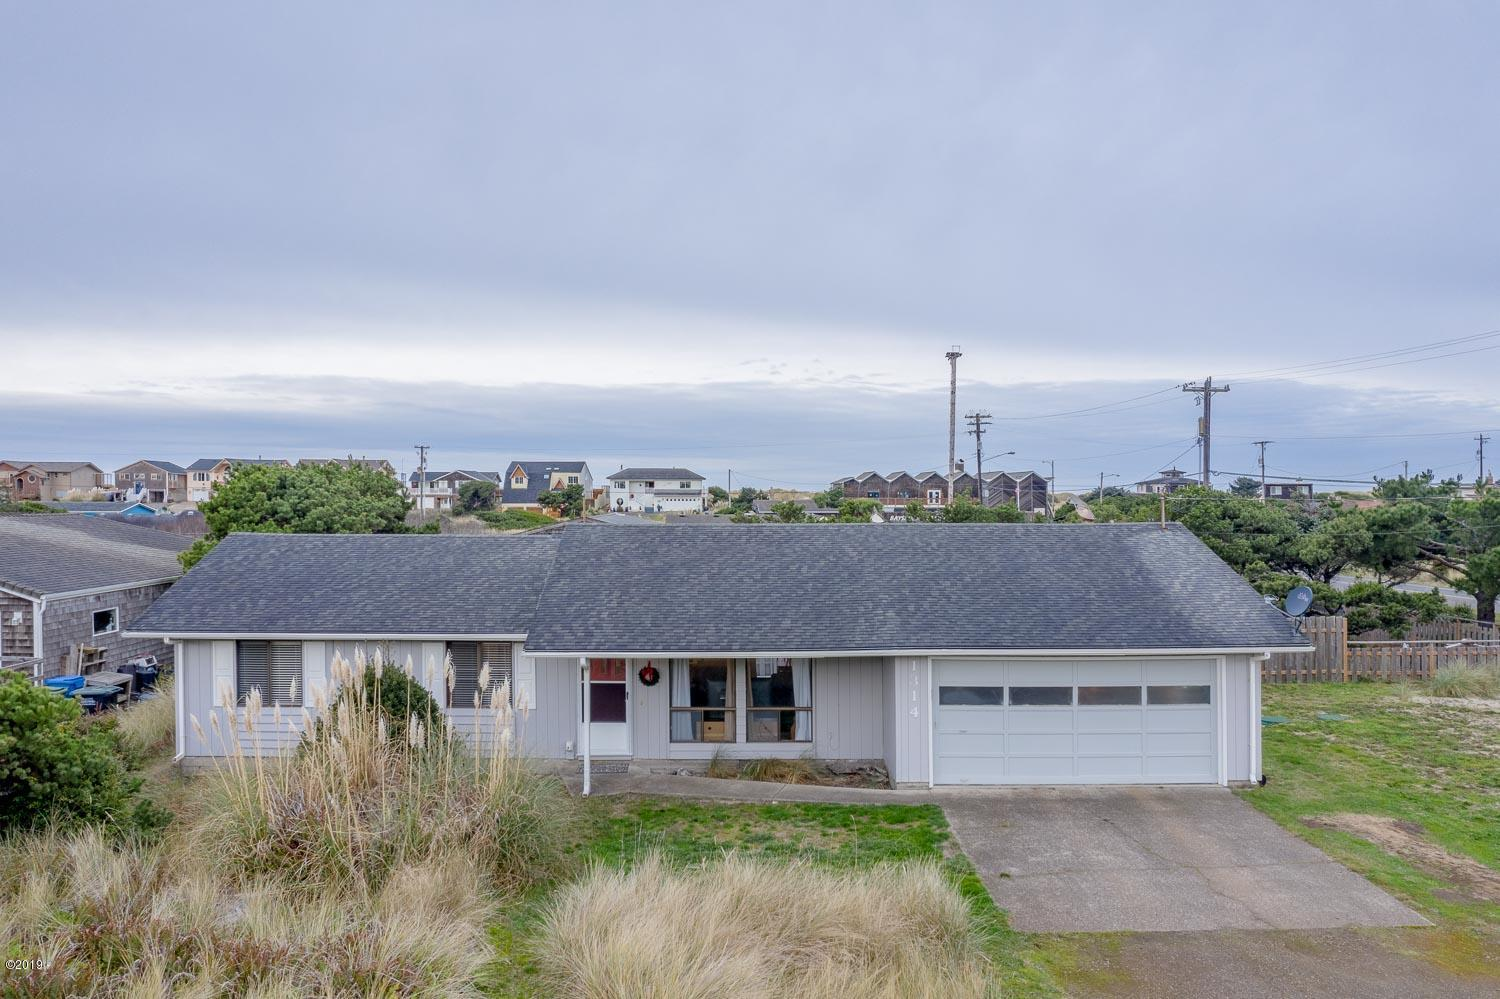 1314 NW Parker Ave, Waldport, OR 97394 - DJI_0534-HDR